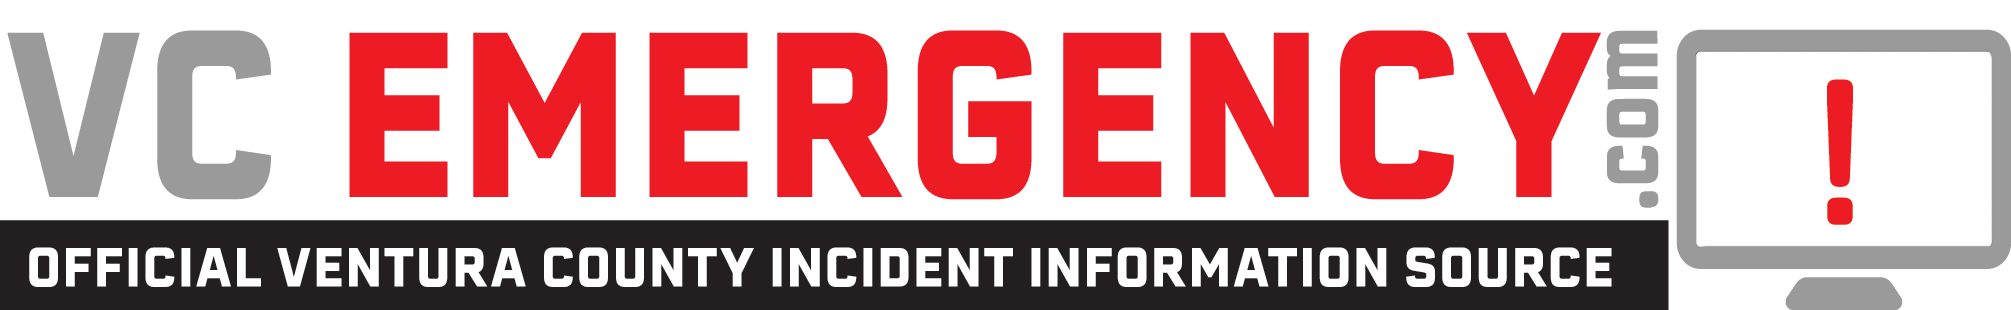 VCEMERGENCY new logo